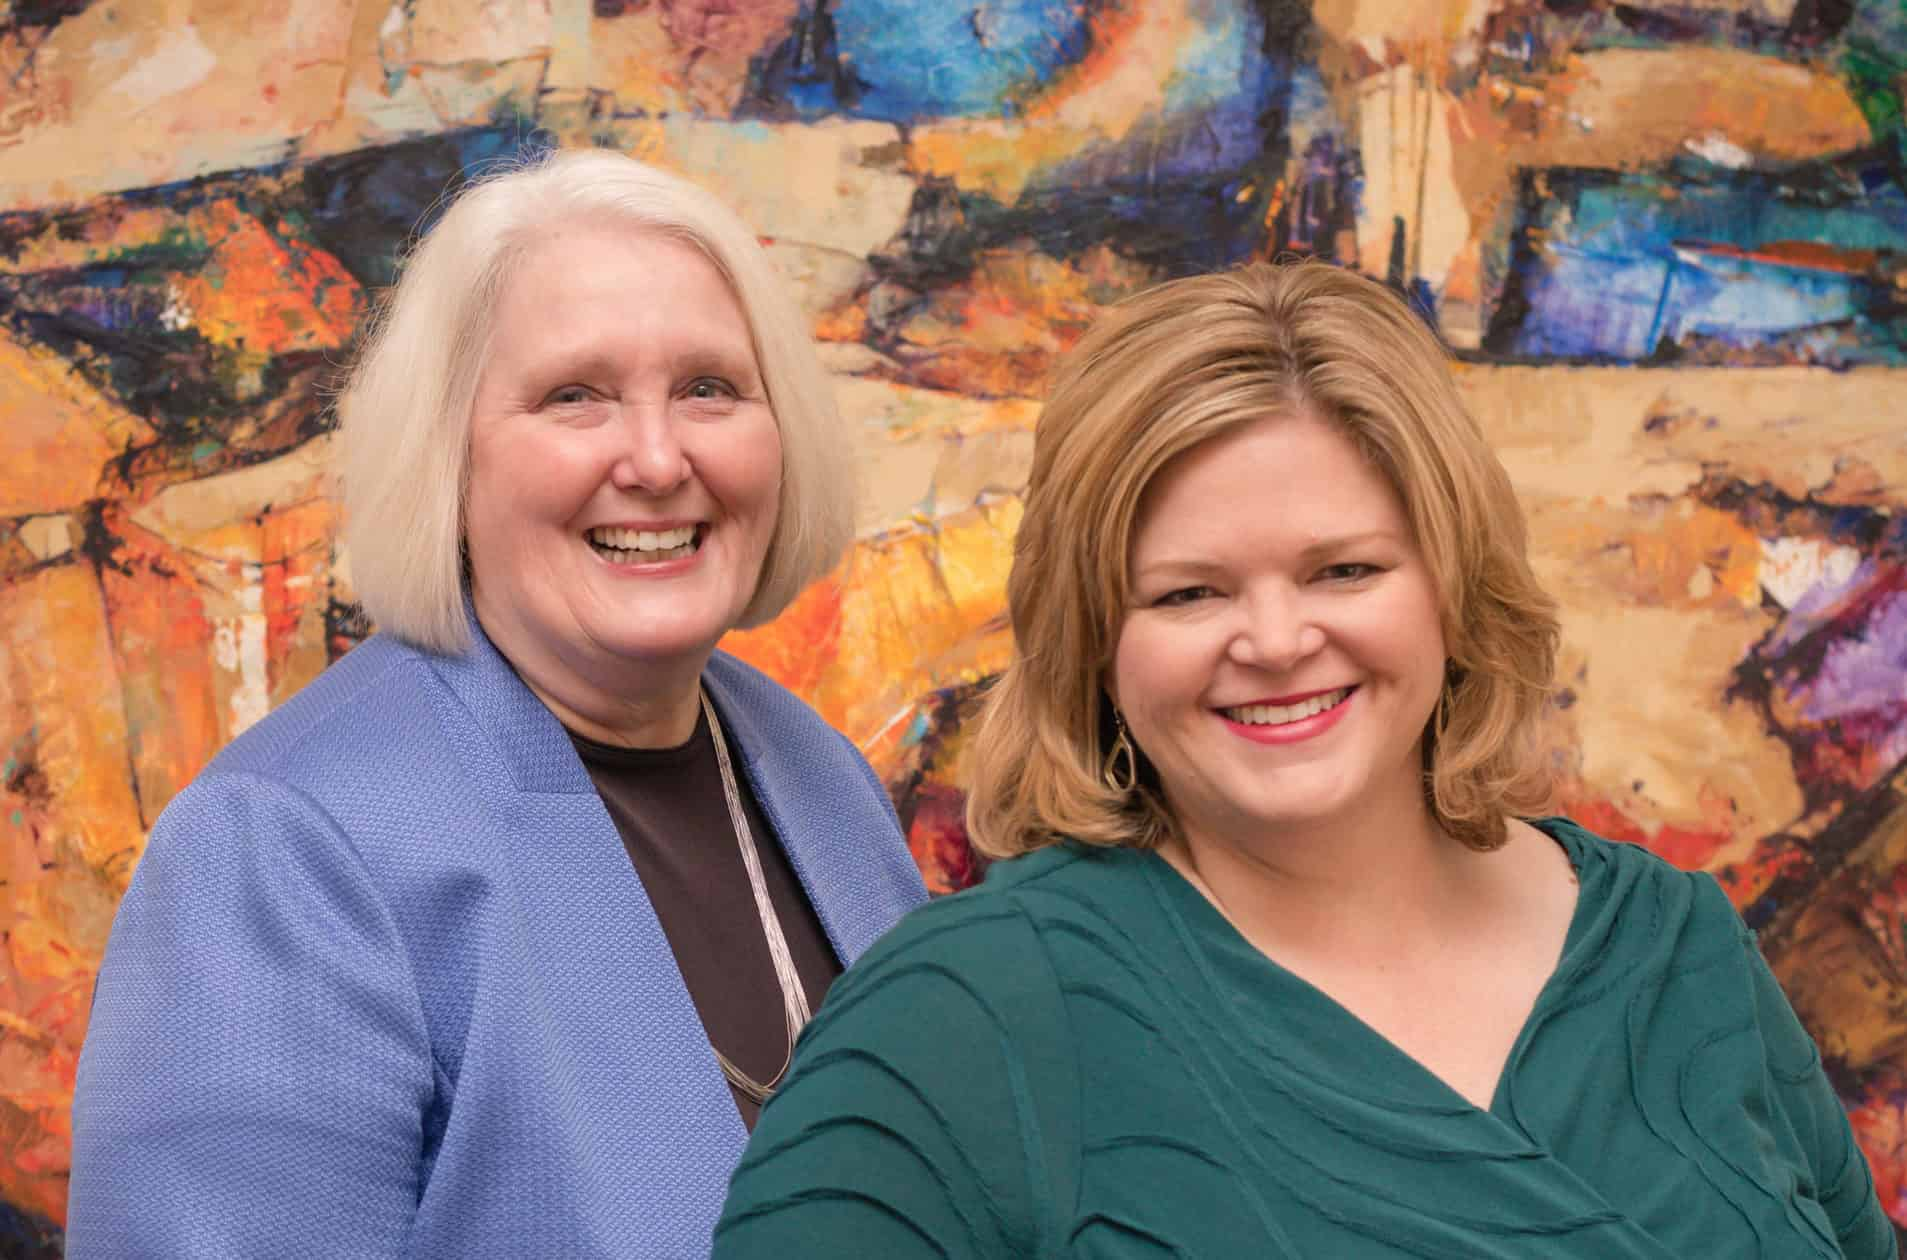 Holly Hall and Laura Davis podcast hosts